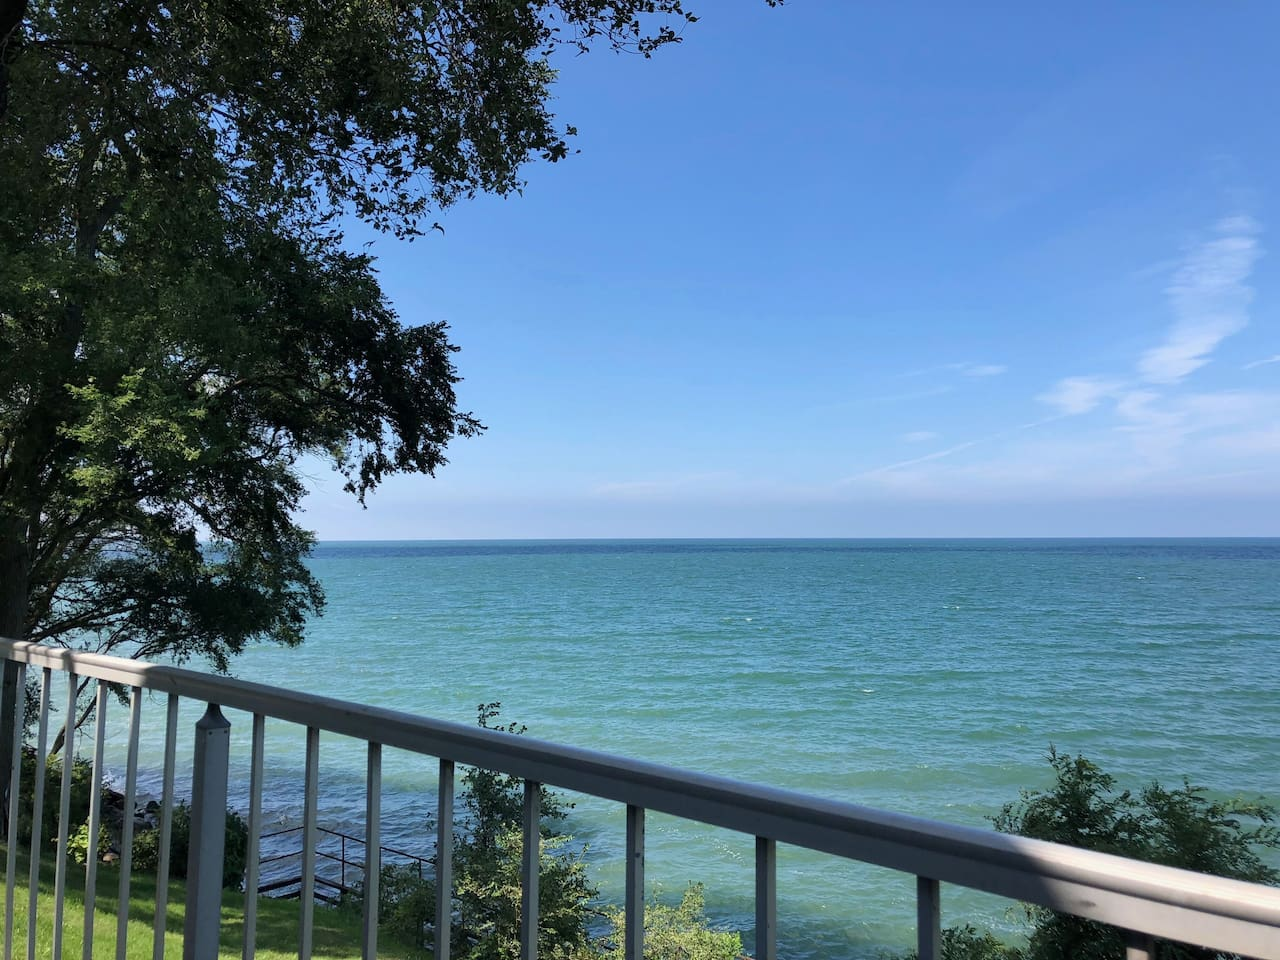 Balcony and seating with beautiful views of Lake Erie